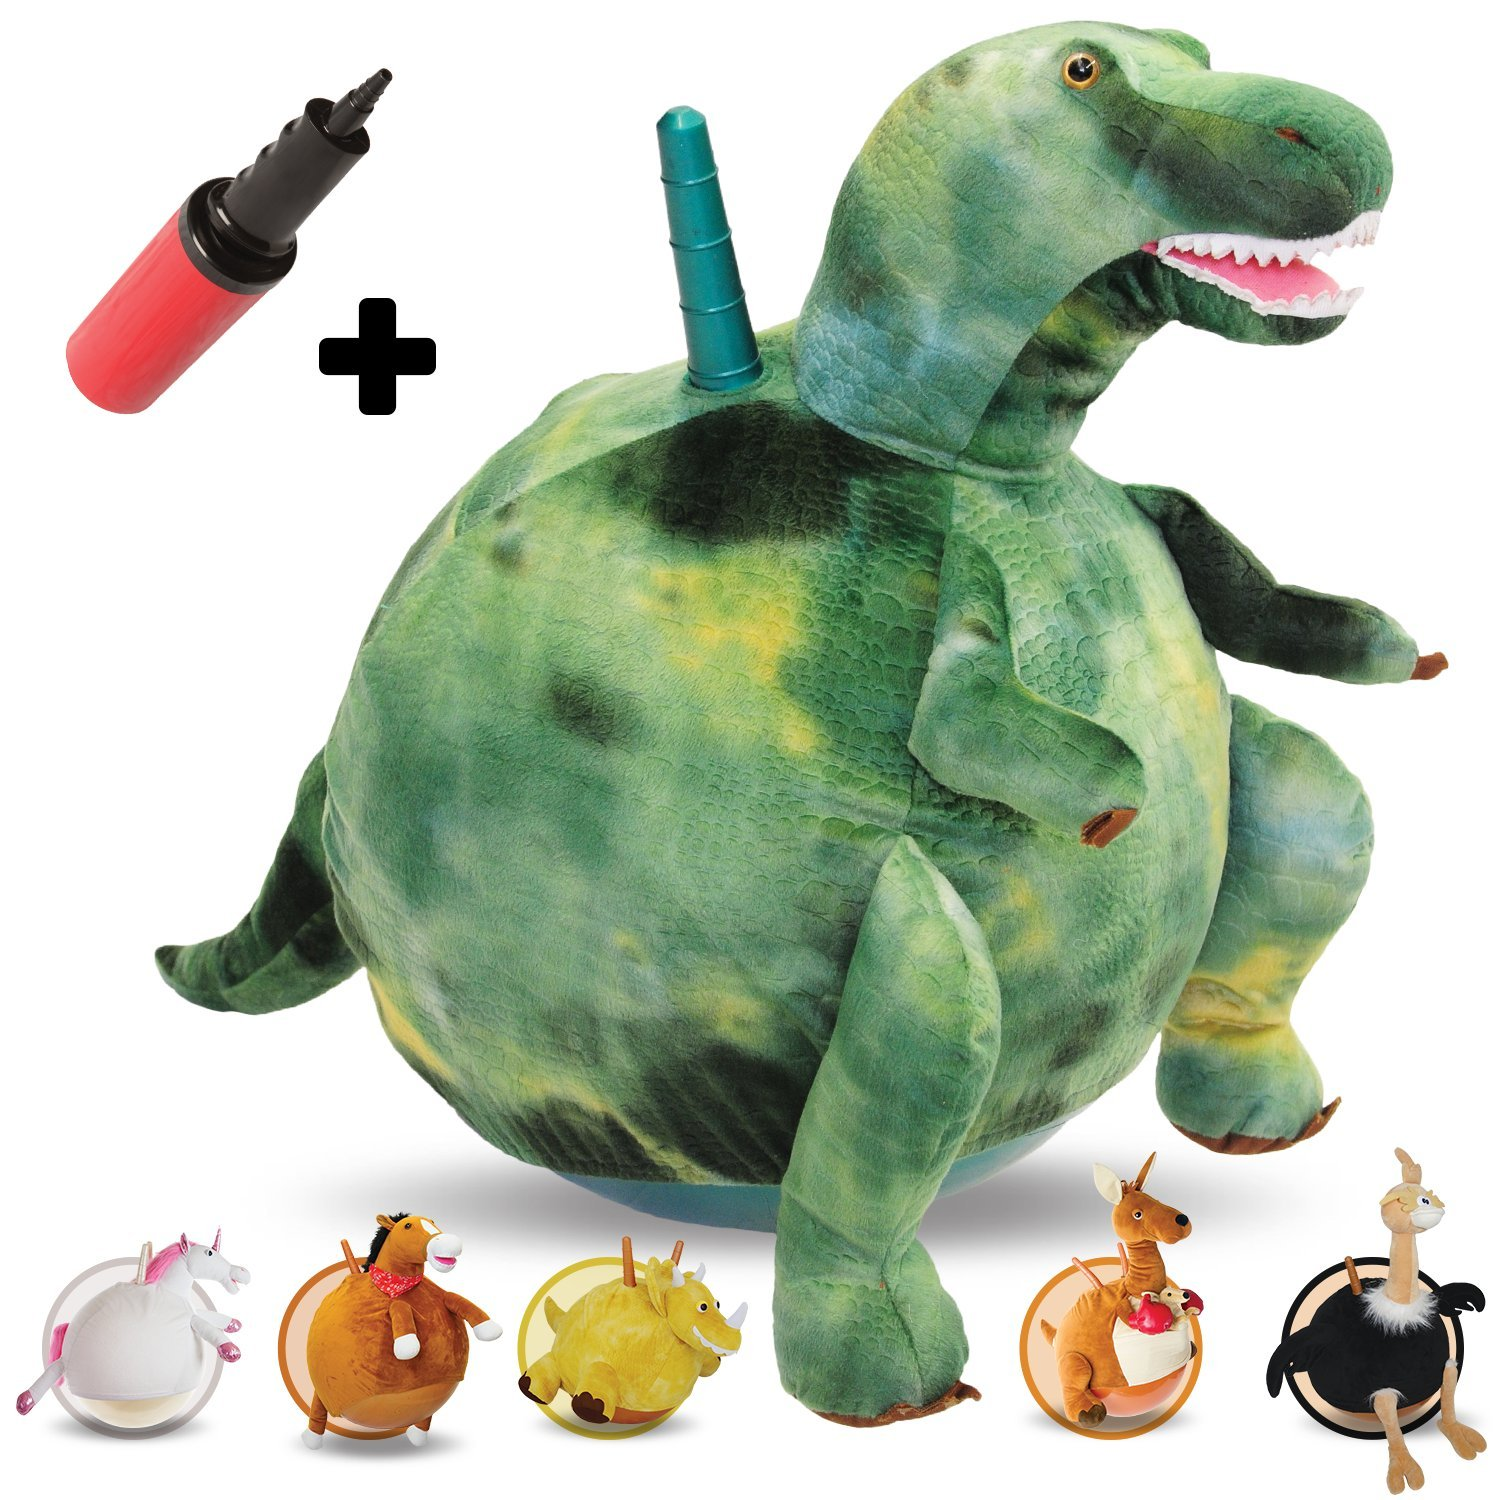 WALIKI TOYS Toothy: Large Hopping Ball Plush T-rex Dinosaur | Hop Ball Hopper | Hoppity Hop (Ages 7-9 with handles)